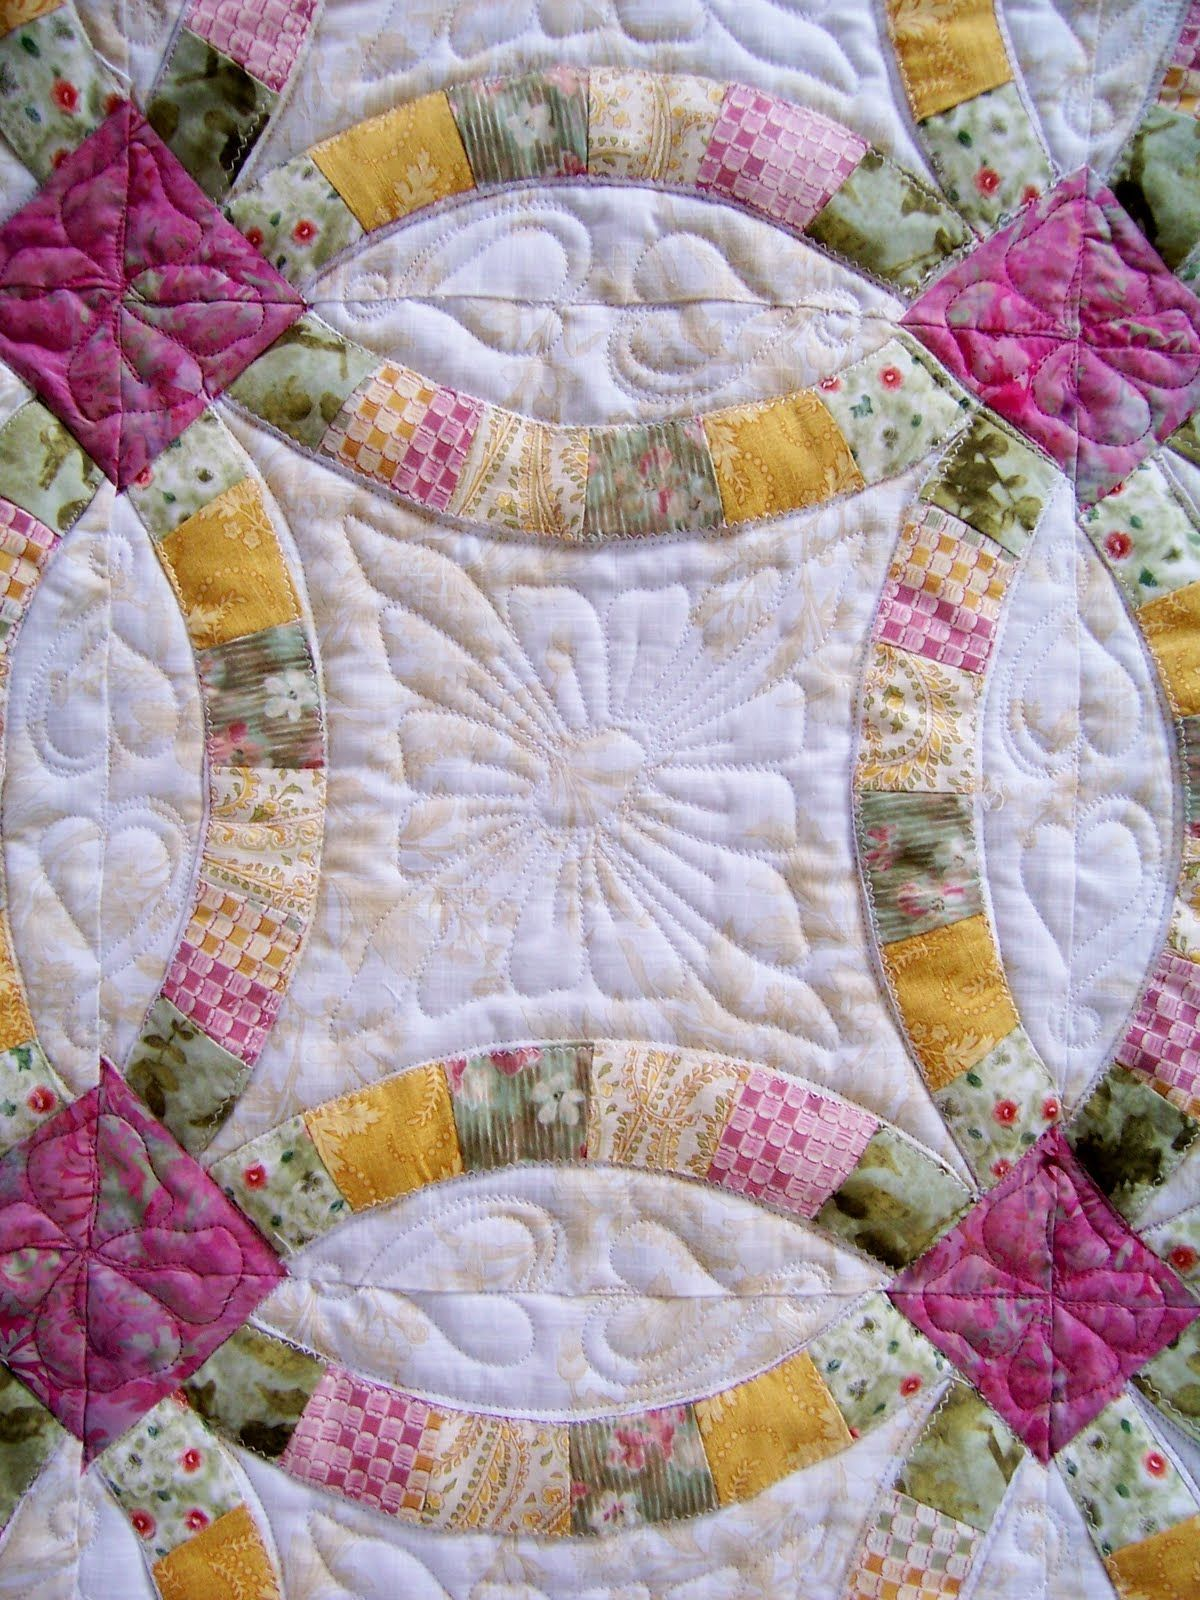 What a color scheme for a wedding ring quilt. I